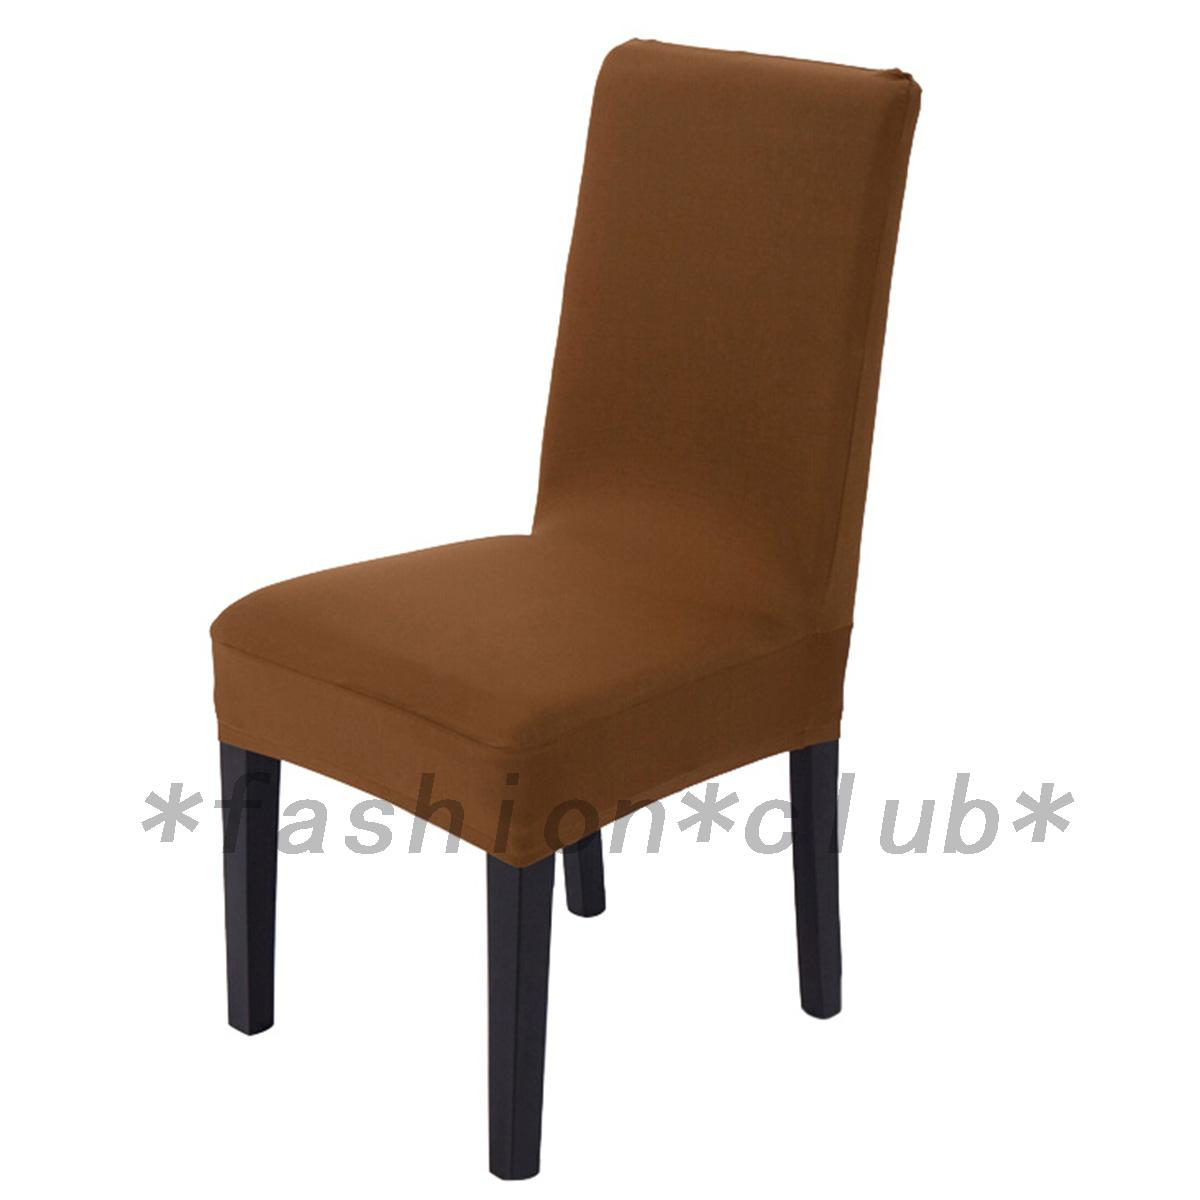 banquet chair covers ebay double rocking adirondack plans 1pcs universal stretch spandex dining room